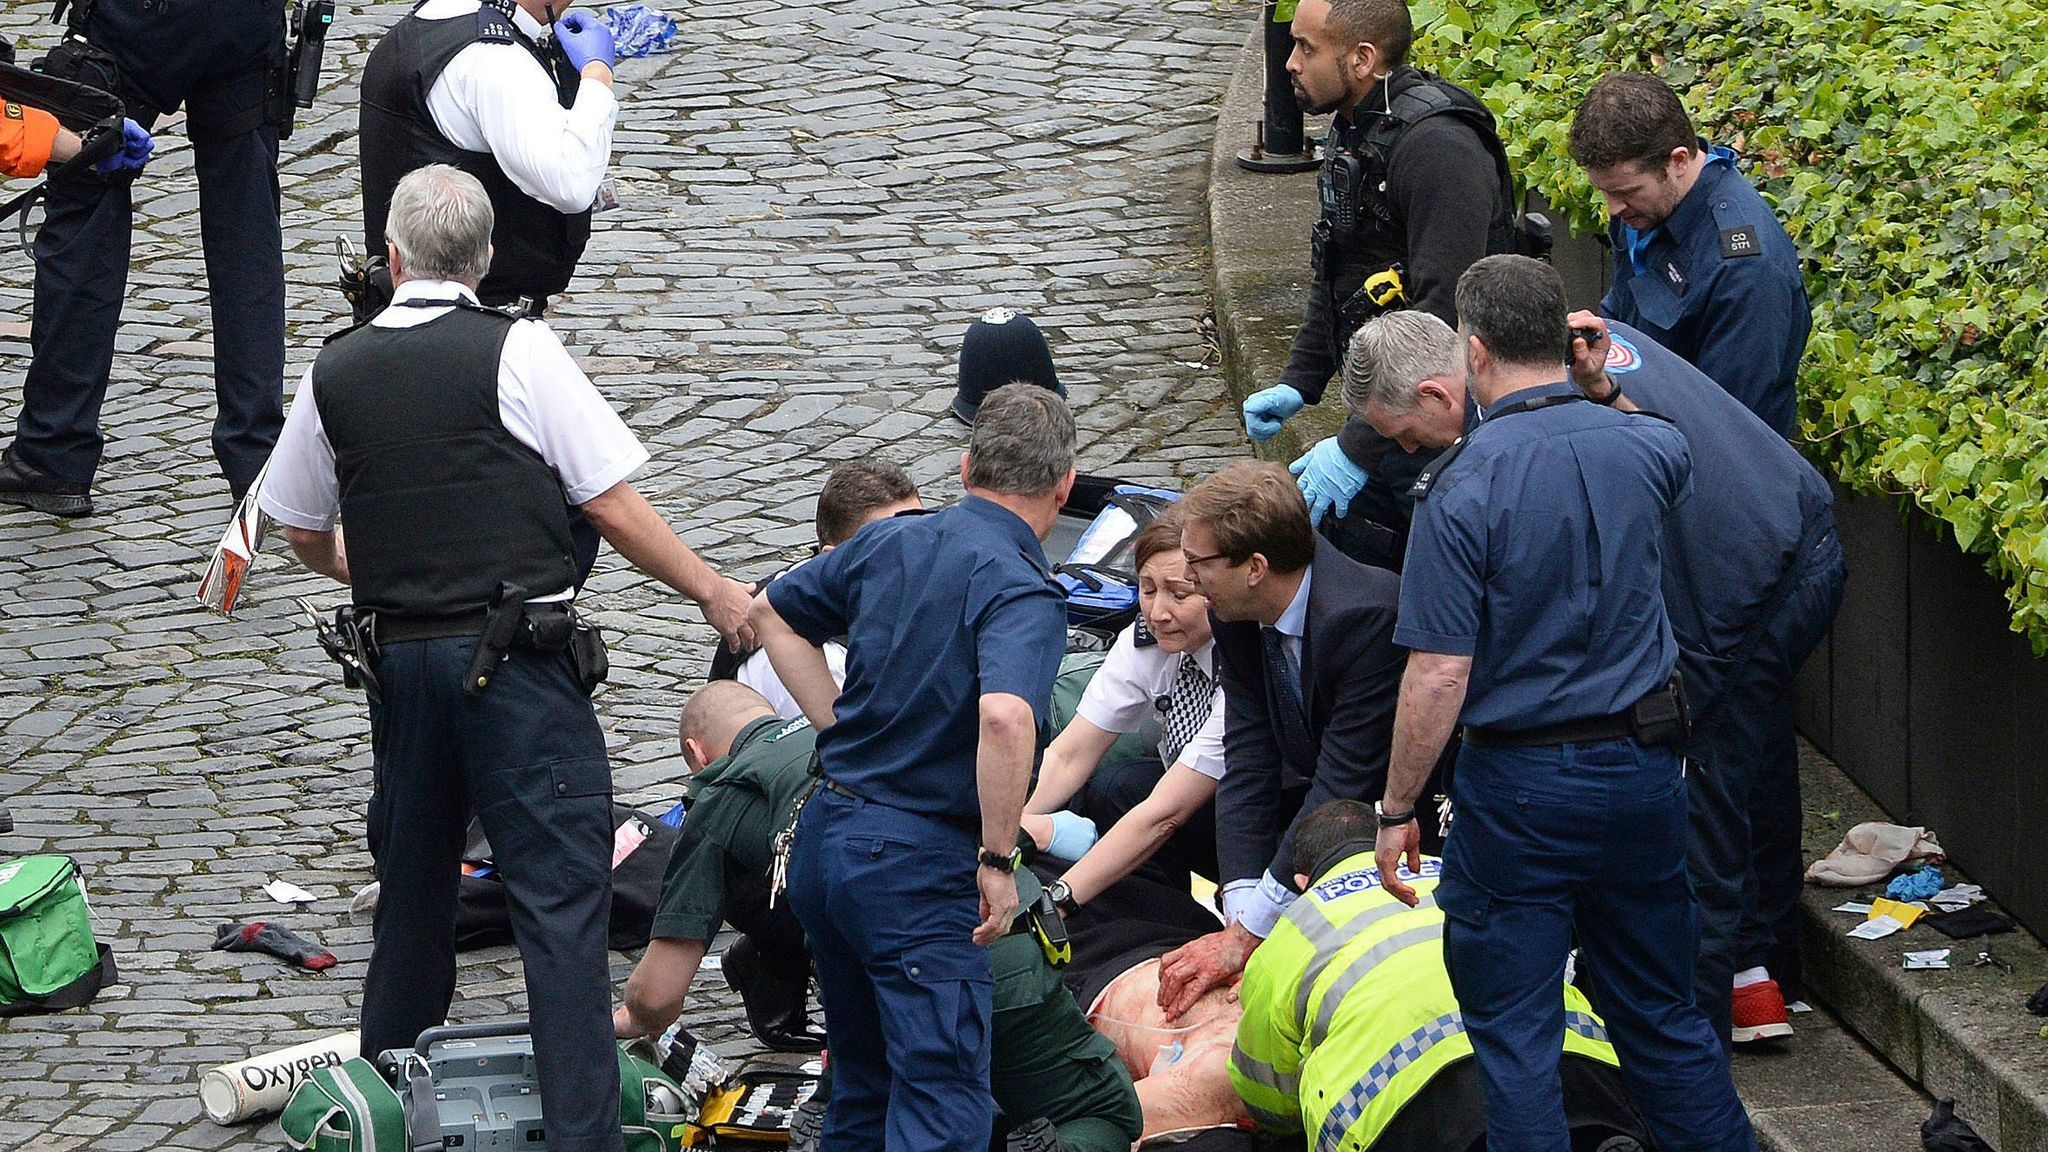 Conservative Member of Parliament Tobias Ellwood, center, helps emergency services attend to an injured person outside the Houses of Parliament in London, England